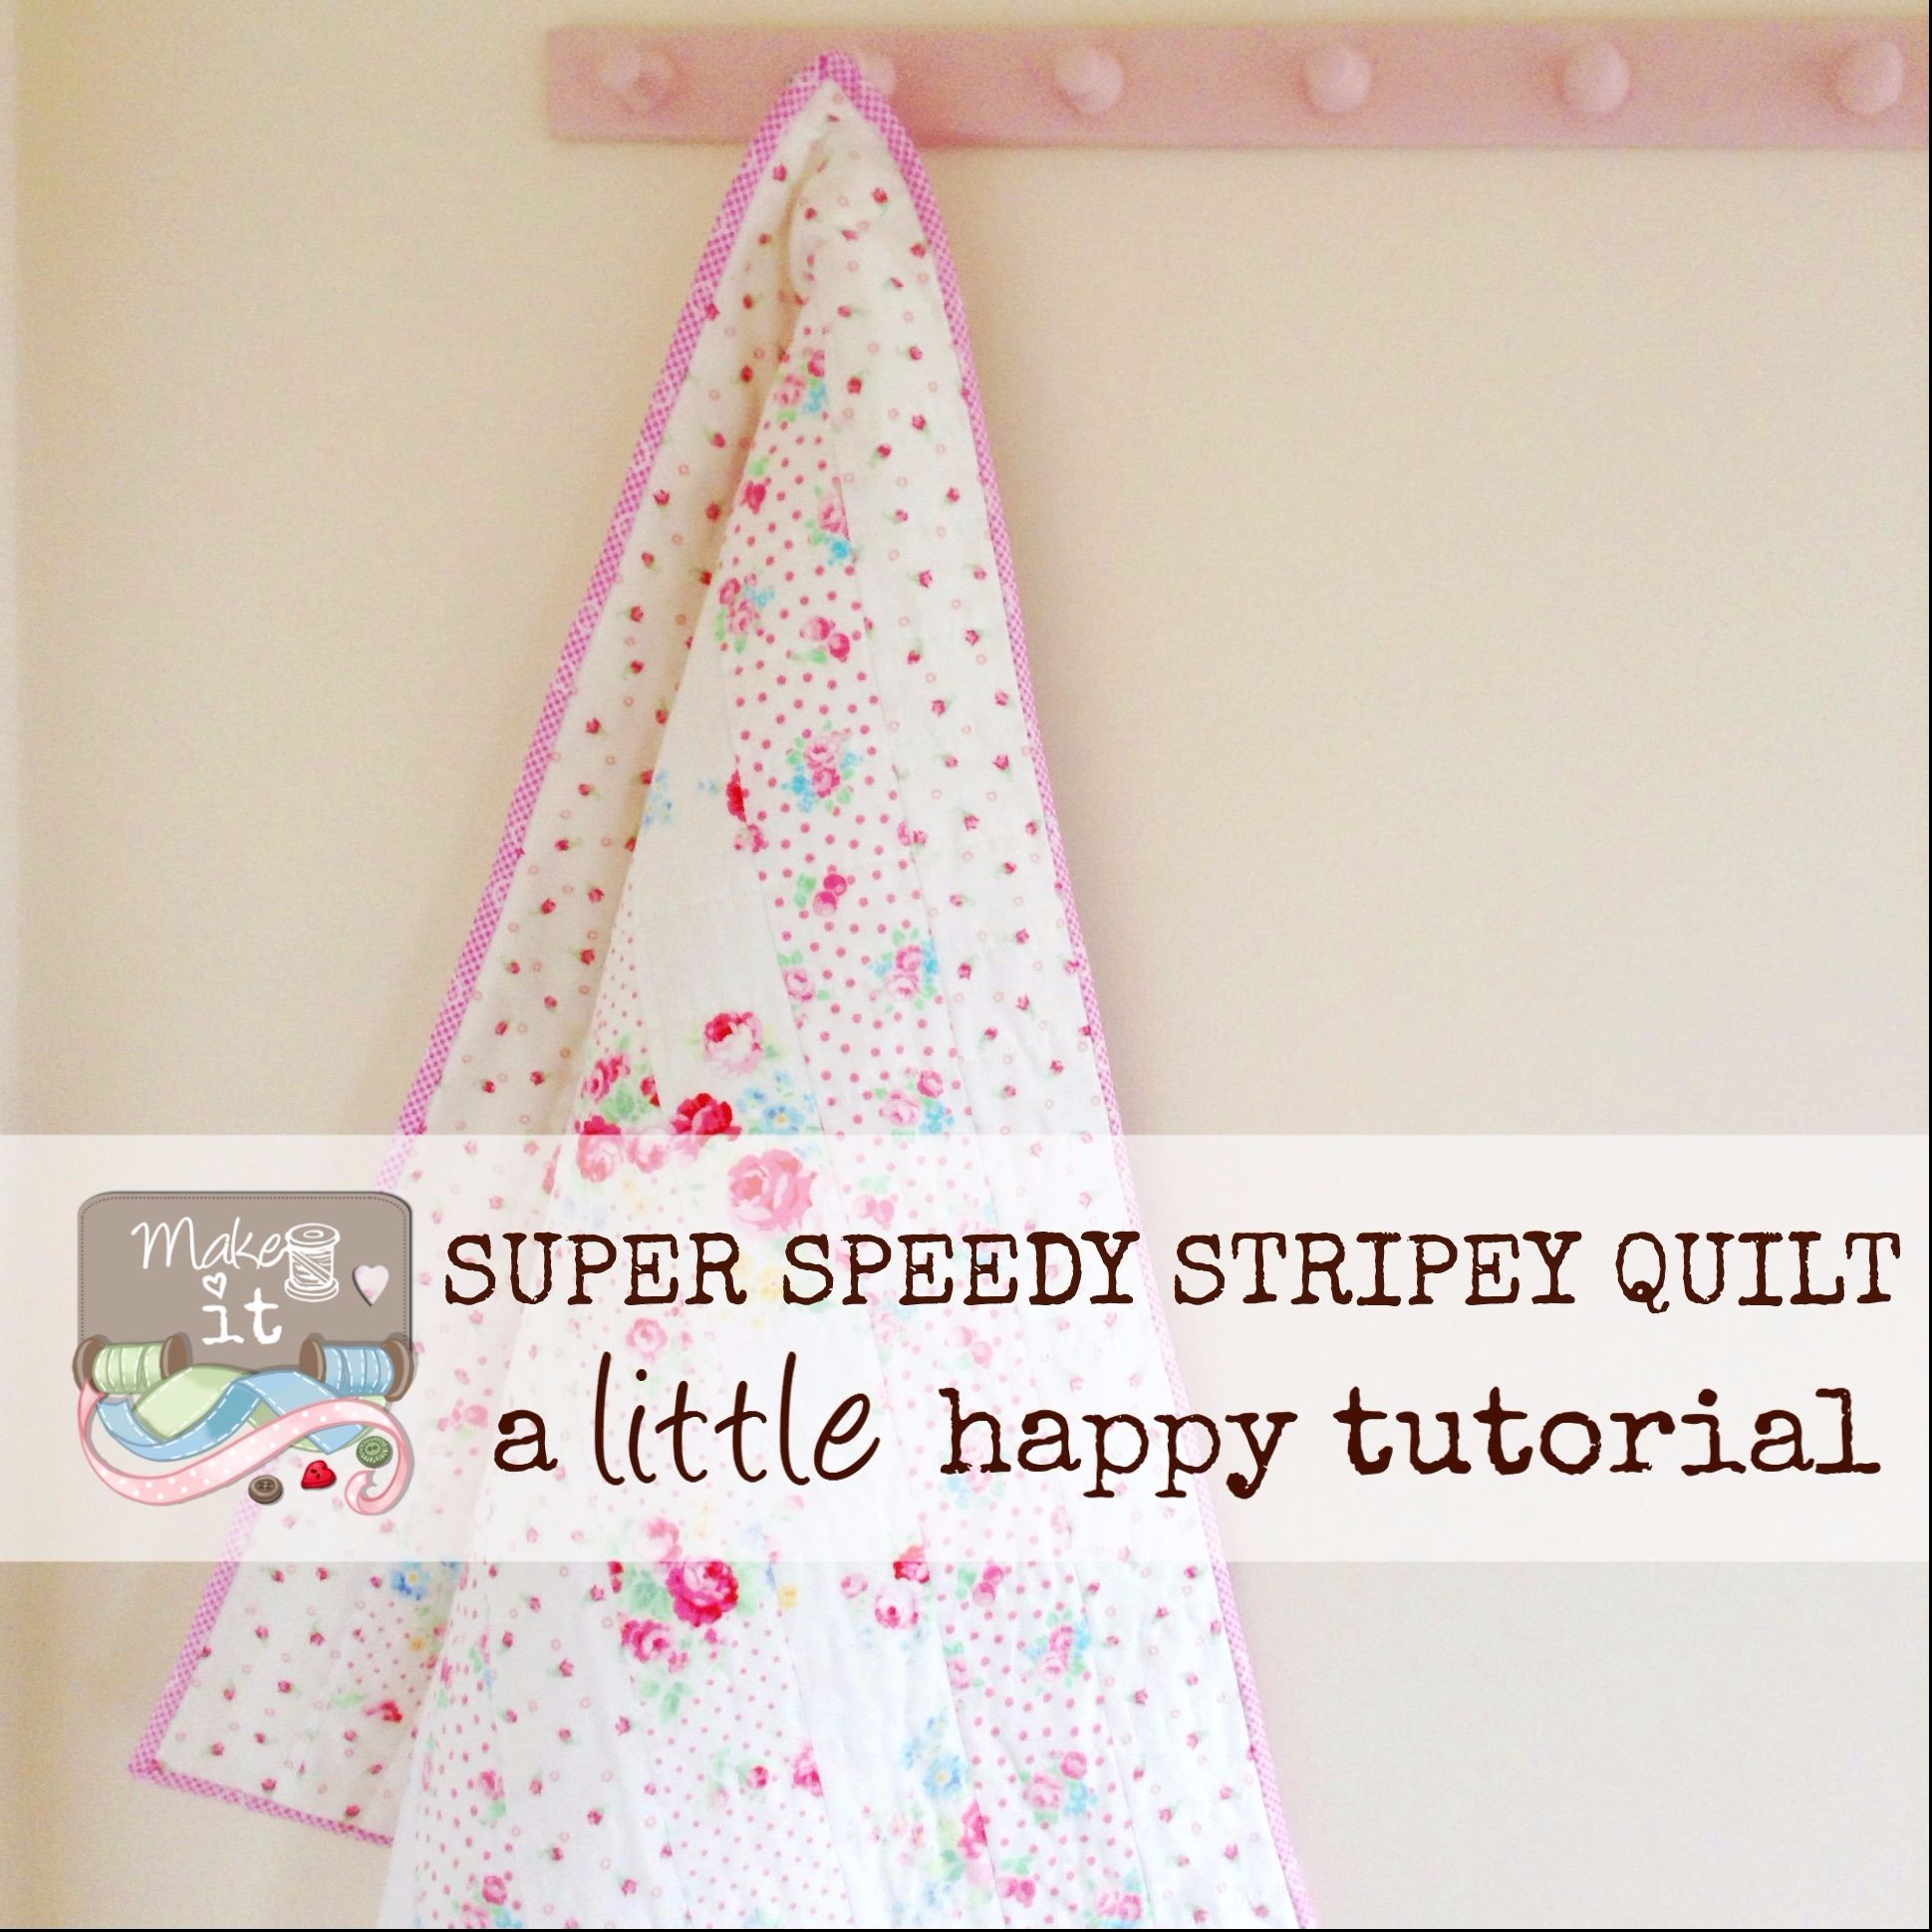 Make it Super Speedy Stripey Quilt